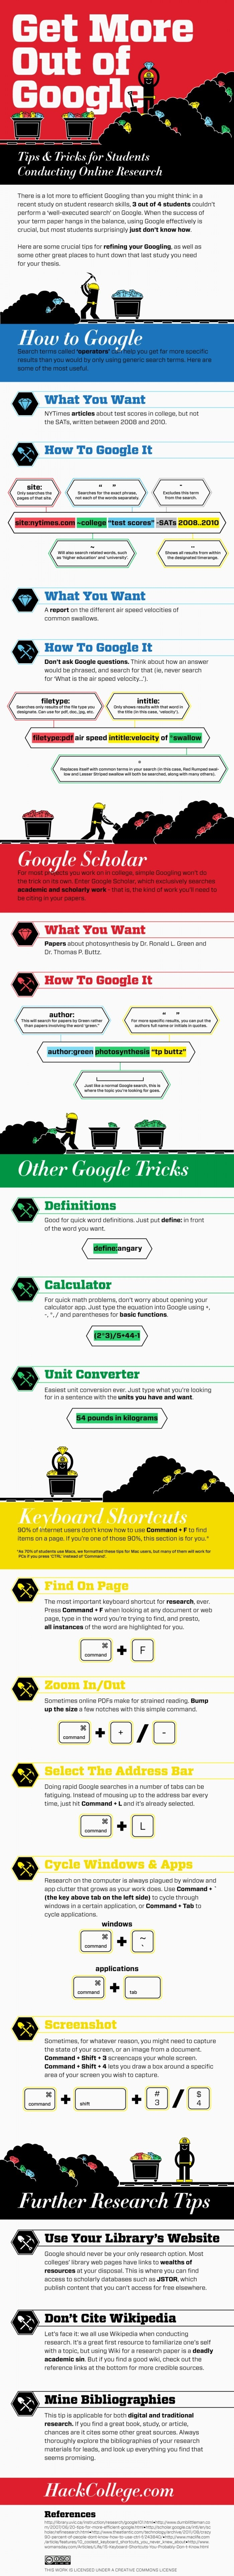 Google Tips & Tricks For Students, An Infographic